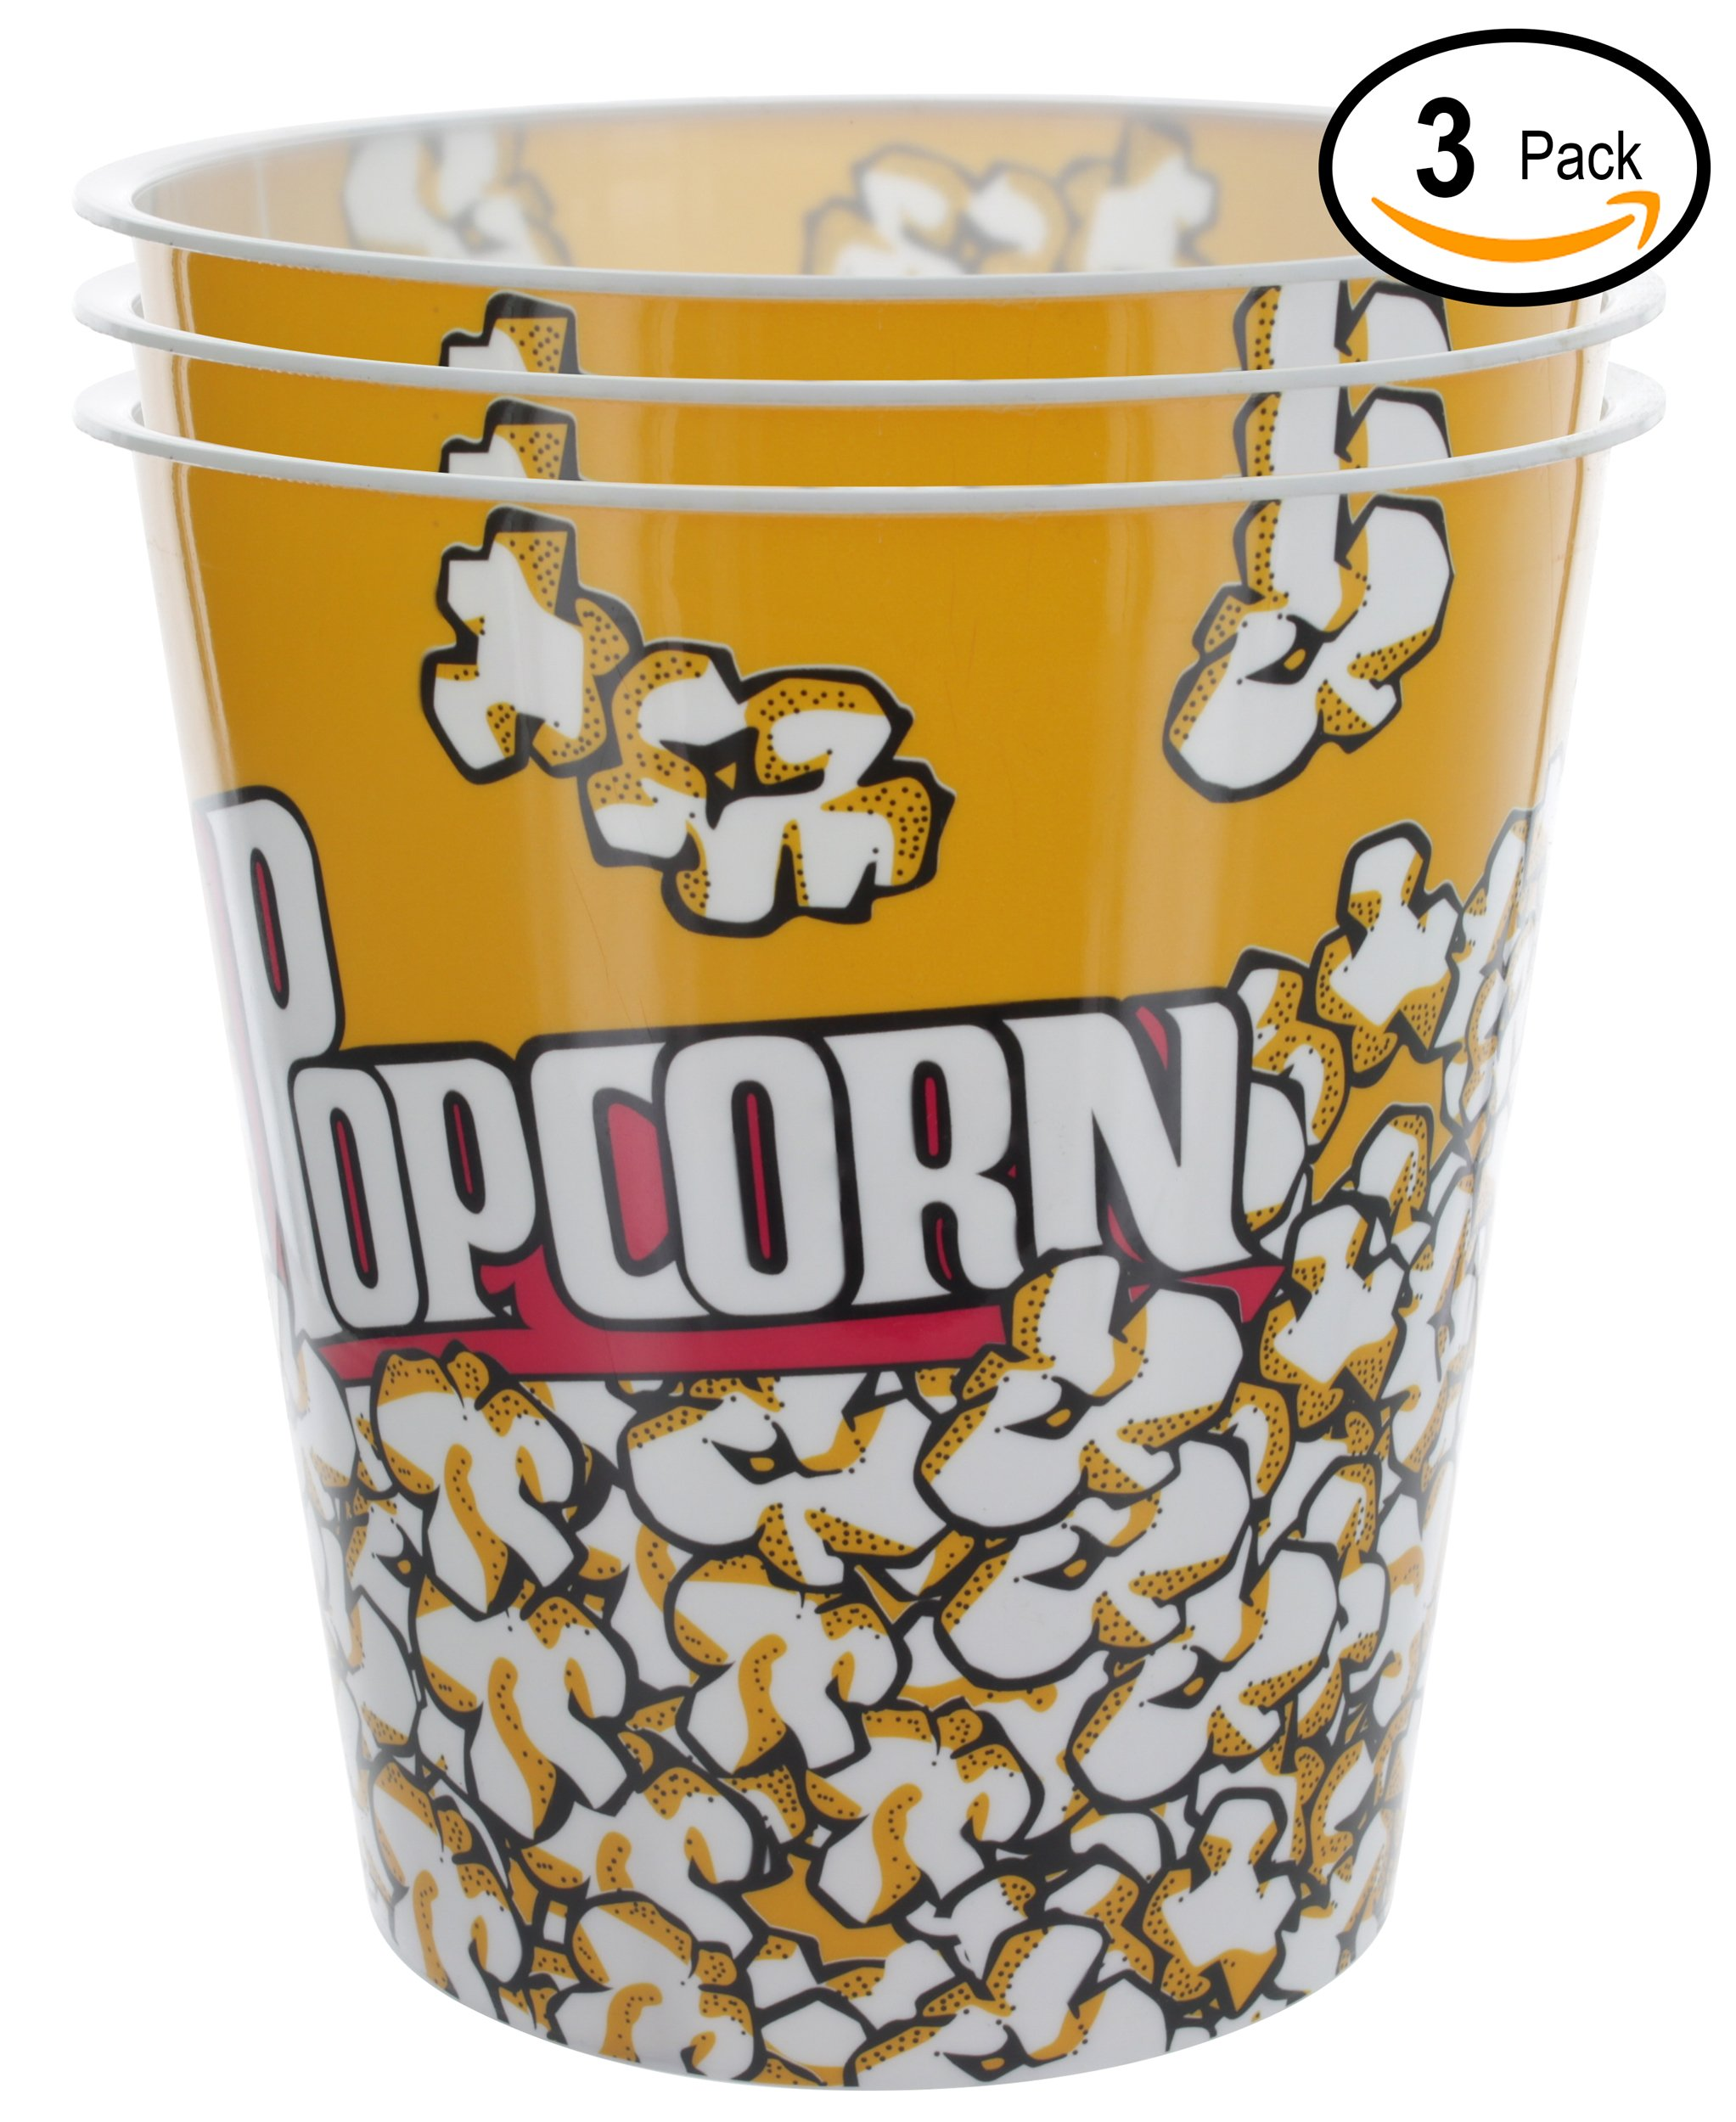 Buy Popcorn Indiana Popcorn Original Movie Theater 5 5 Ounce Pack Of 6 In Cheap Price On Alibaba Com